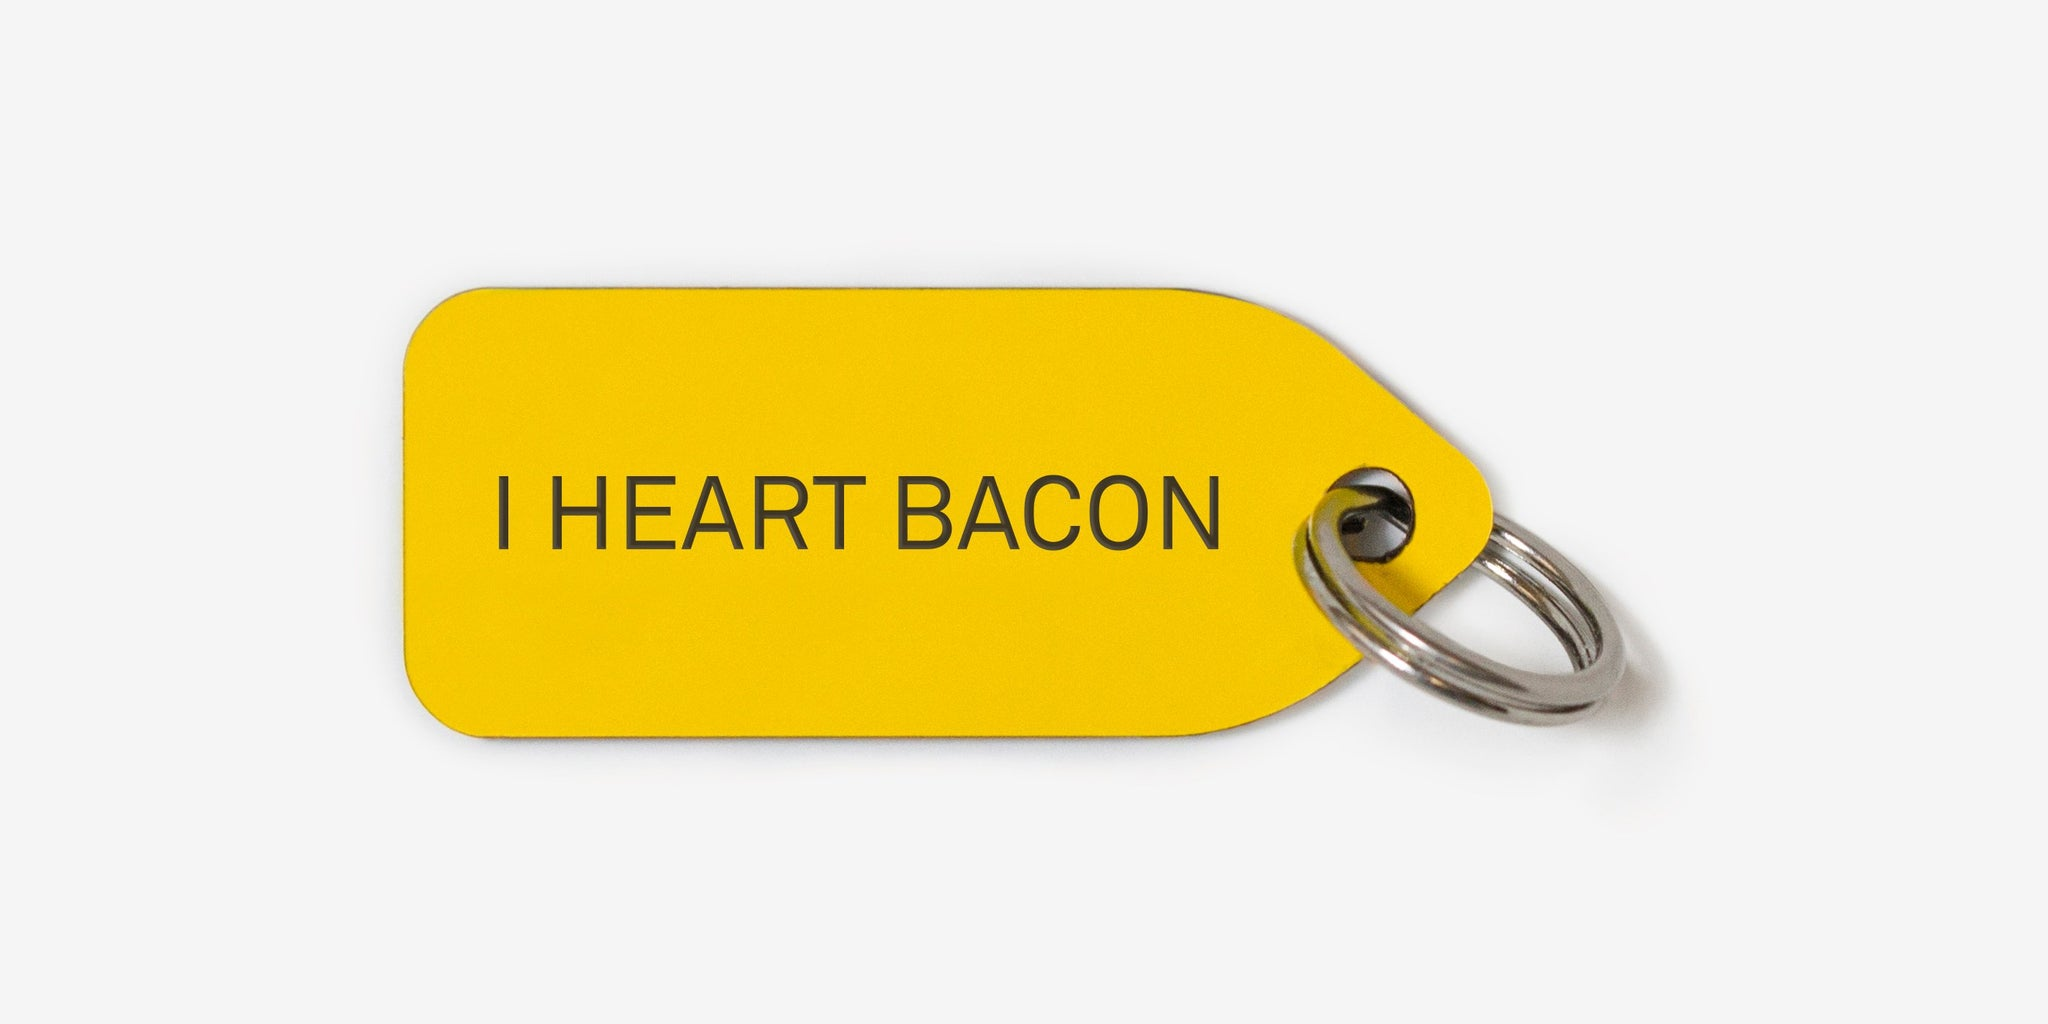 I heart bacon | dog tag | collar charm | Growlees